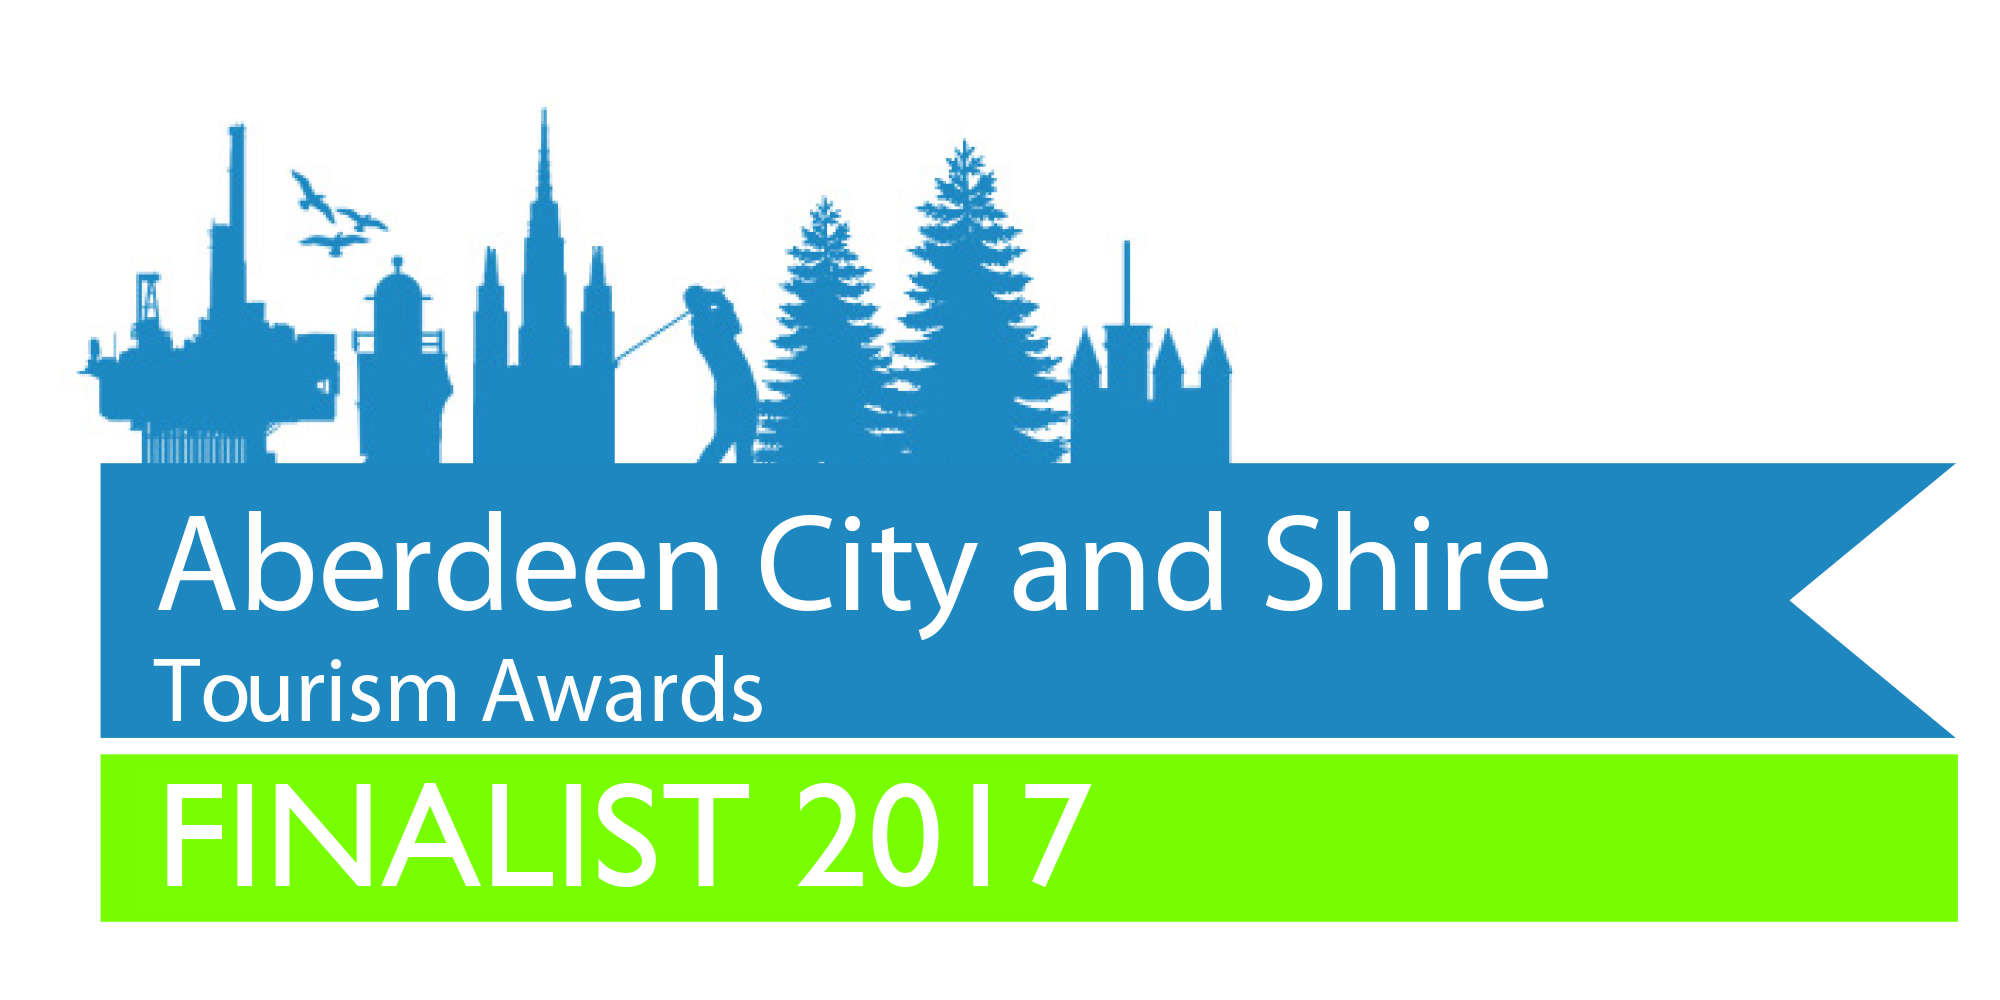 Aberdeen City and Shire Tourism Award 2017 Finalist